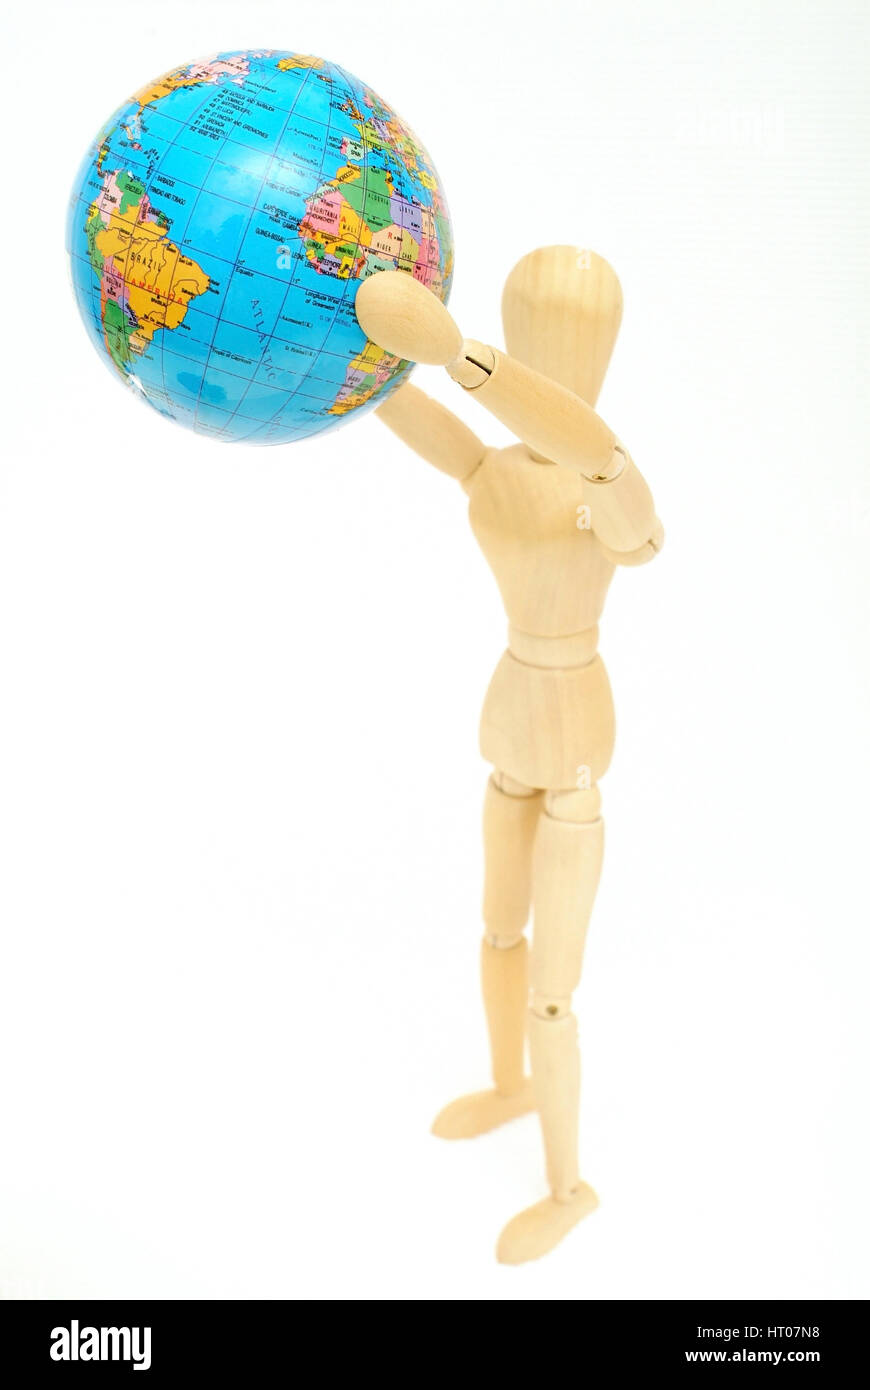 Holzfigur haelt Globus in der Hand - jointed doll with globe in hands - Stock Image